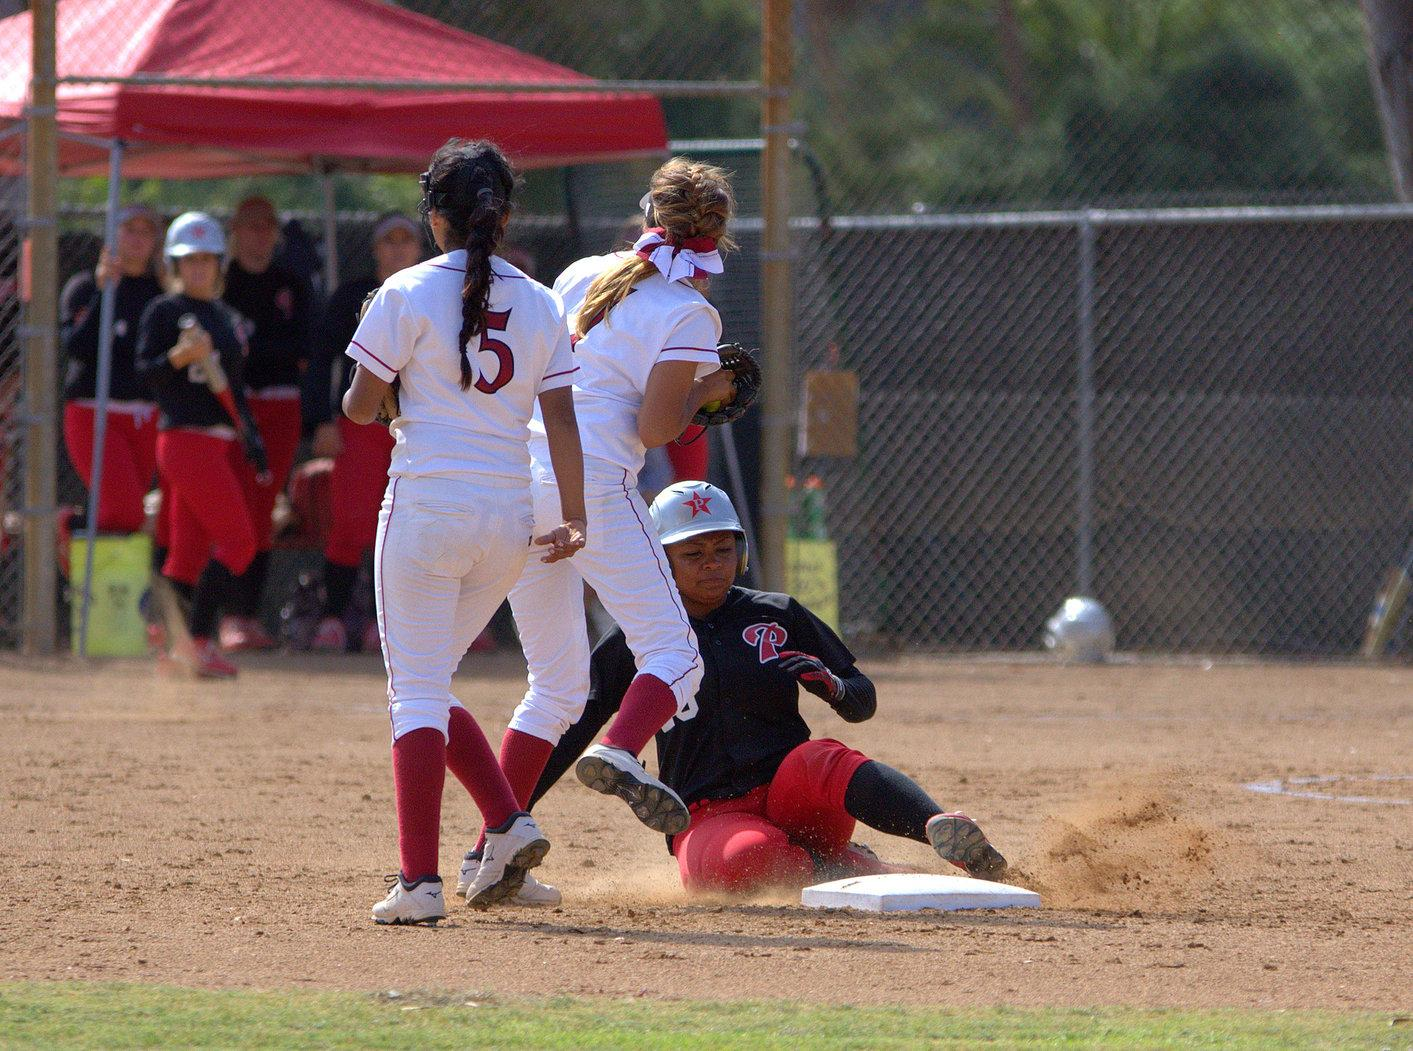 Palomar College freshman third baseman Iesha Hill slides to second base during the fourth inning at the Betty Hock Softball Field on April 21 where the Comets got the 14-0 victory against the Knights. Photo credit: David Pradel